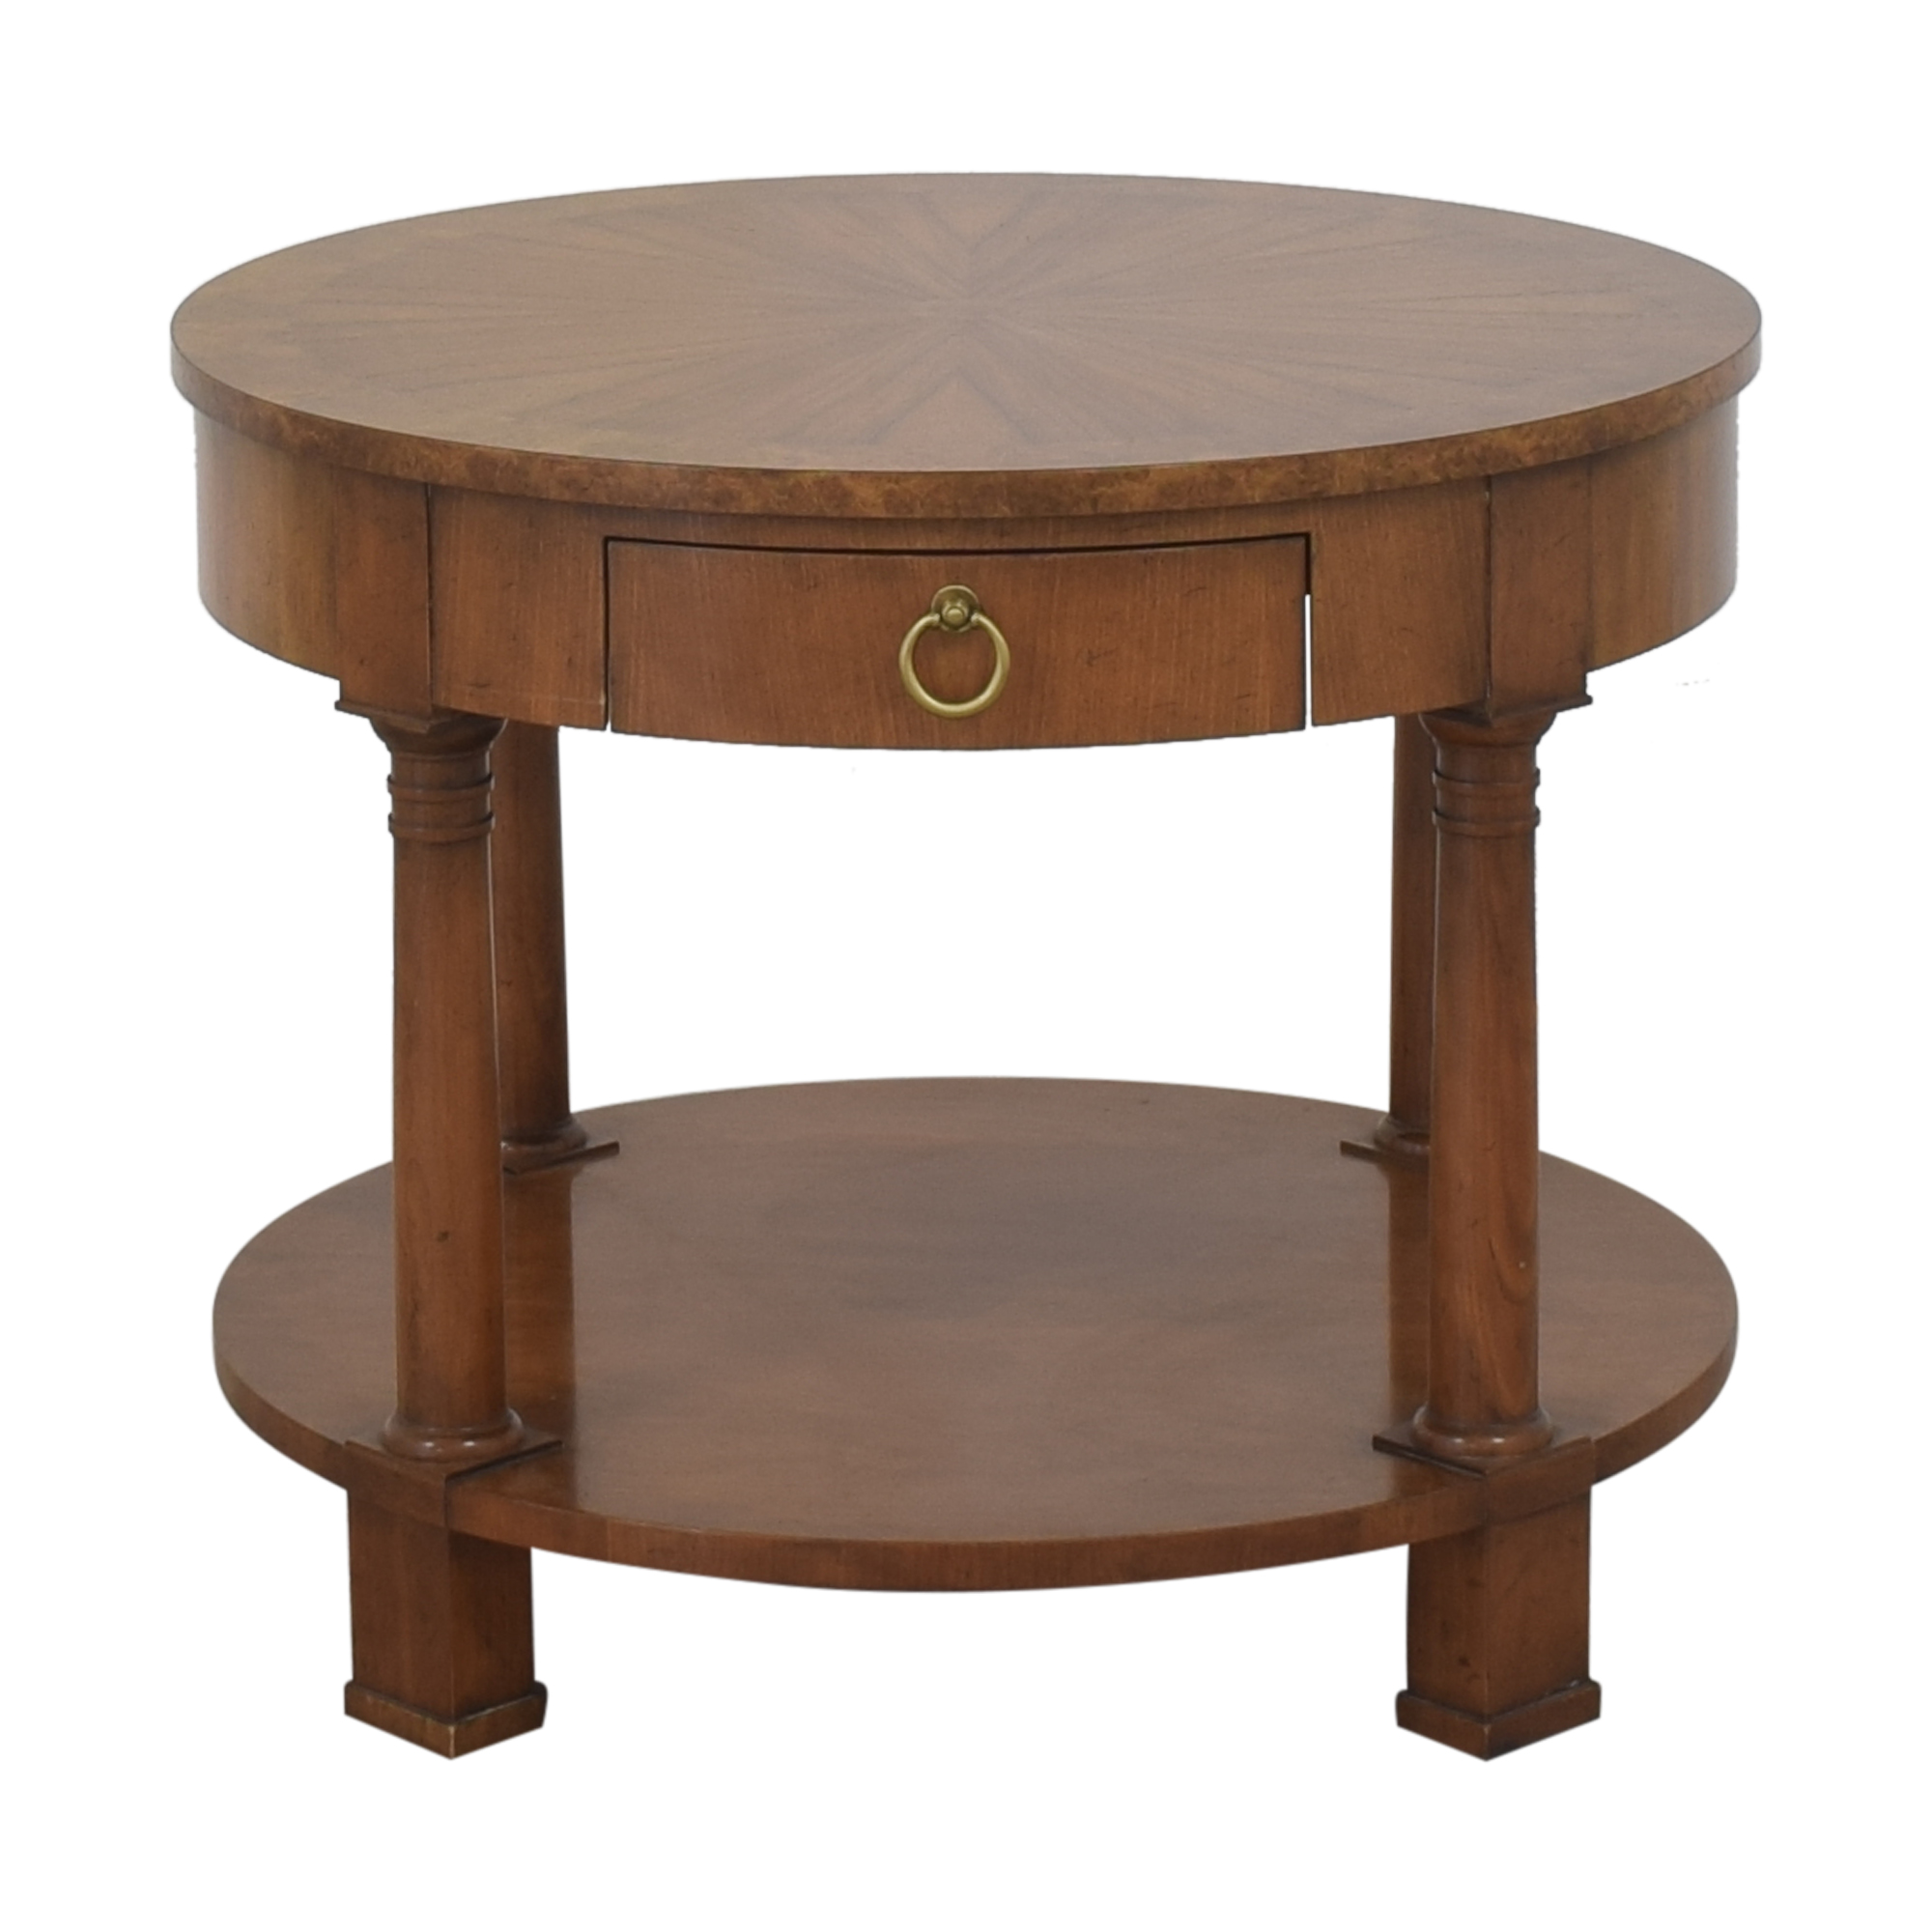 Baker Furniture Round End Table sale